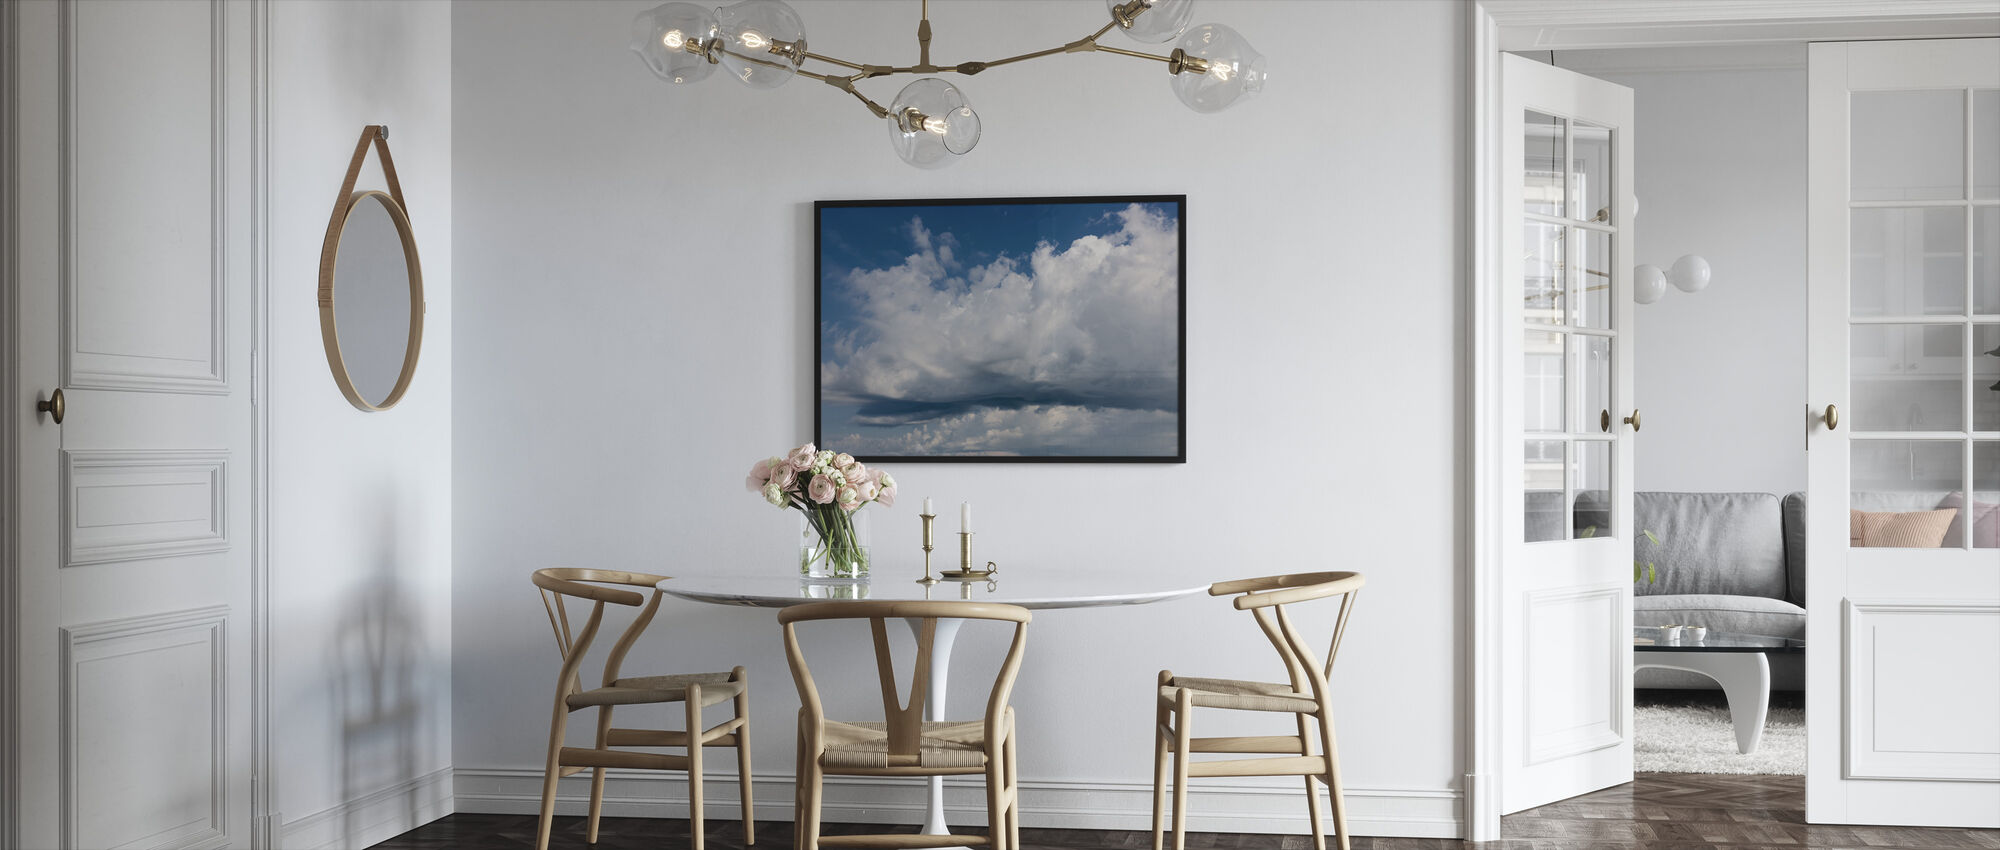 Cloudy Sky - Framed print - Kitchen